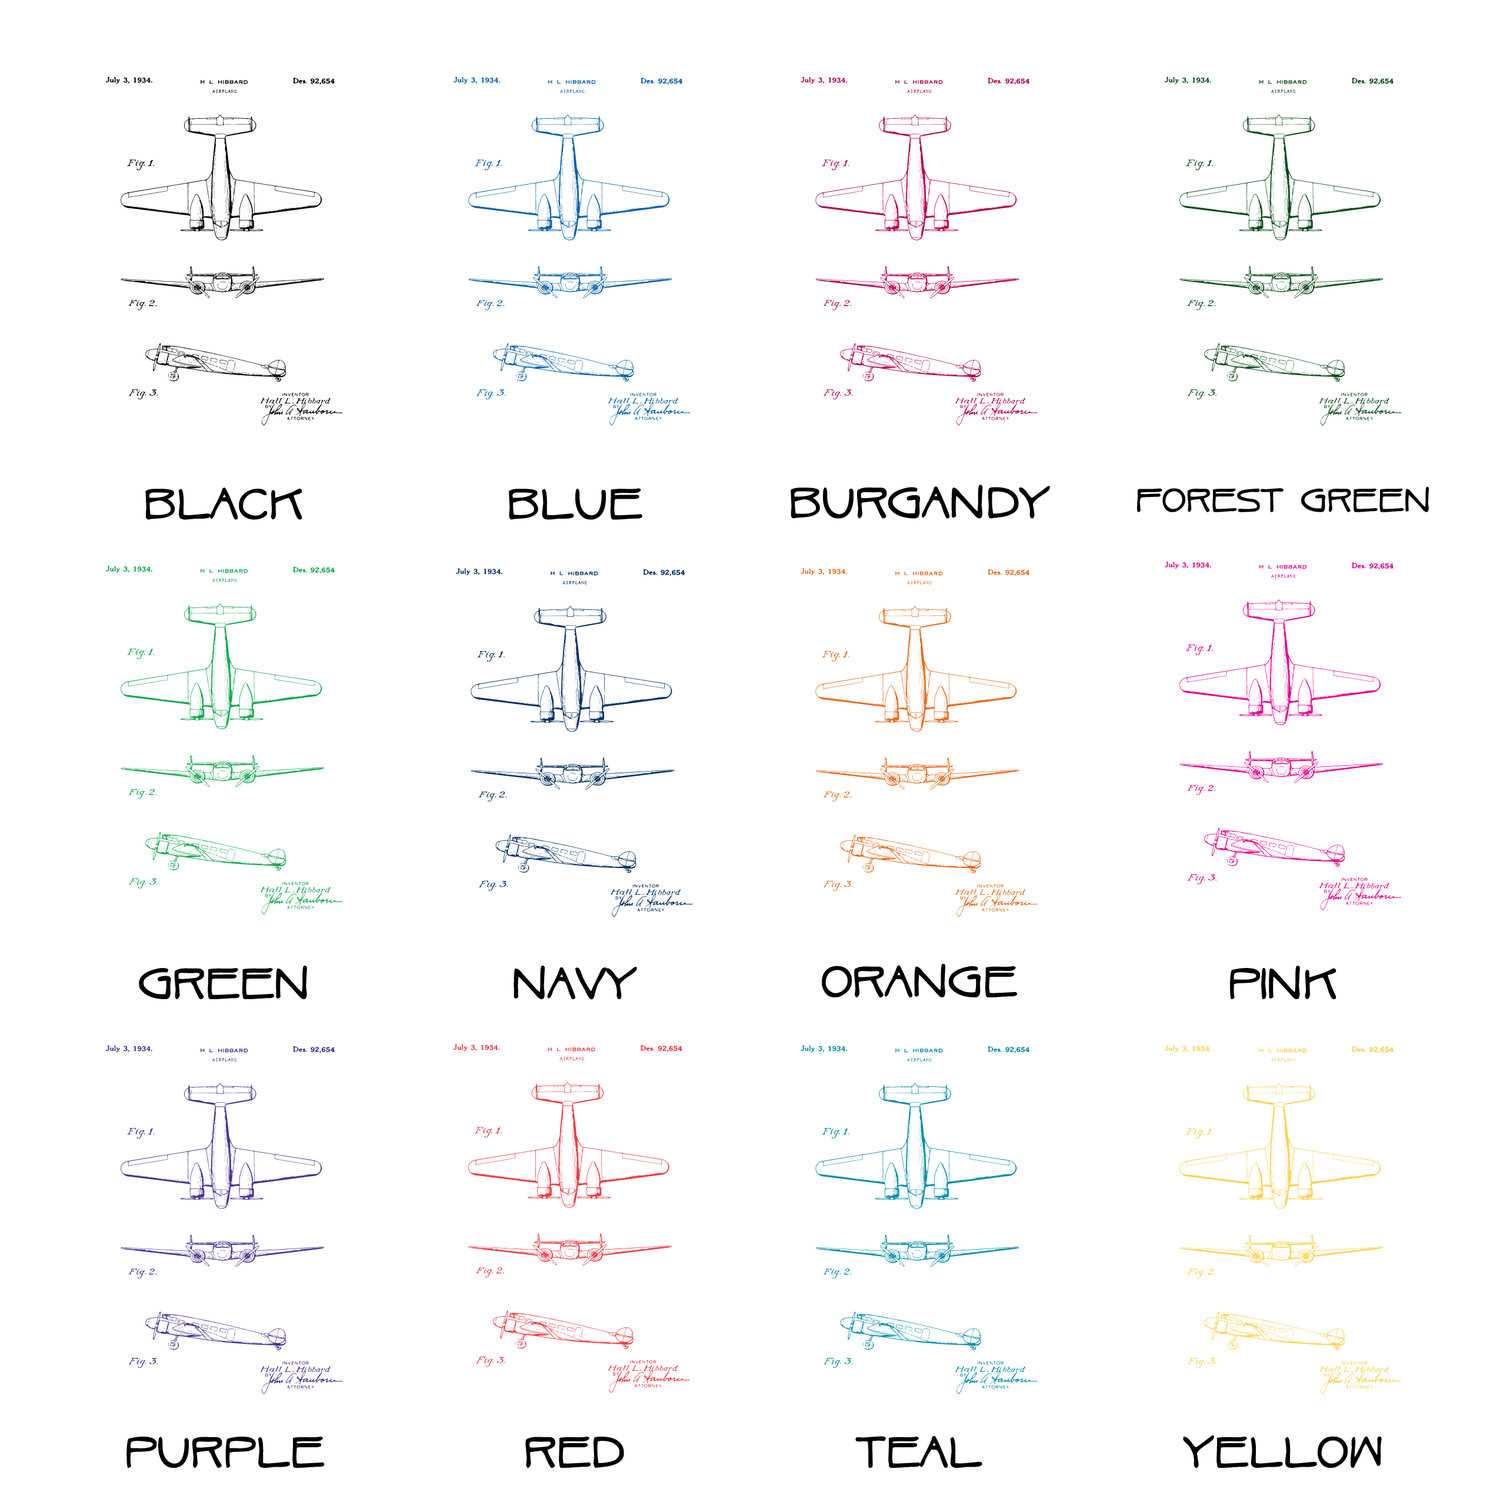 Airplane patent poster lockheed electra airplane patent poster airplane patent poster lockheed electra airplane patent poster patent art blueprint art patent wall art airplane patent print malvernweather Gallery